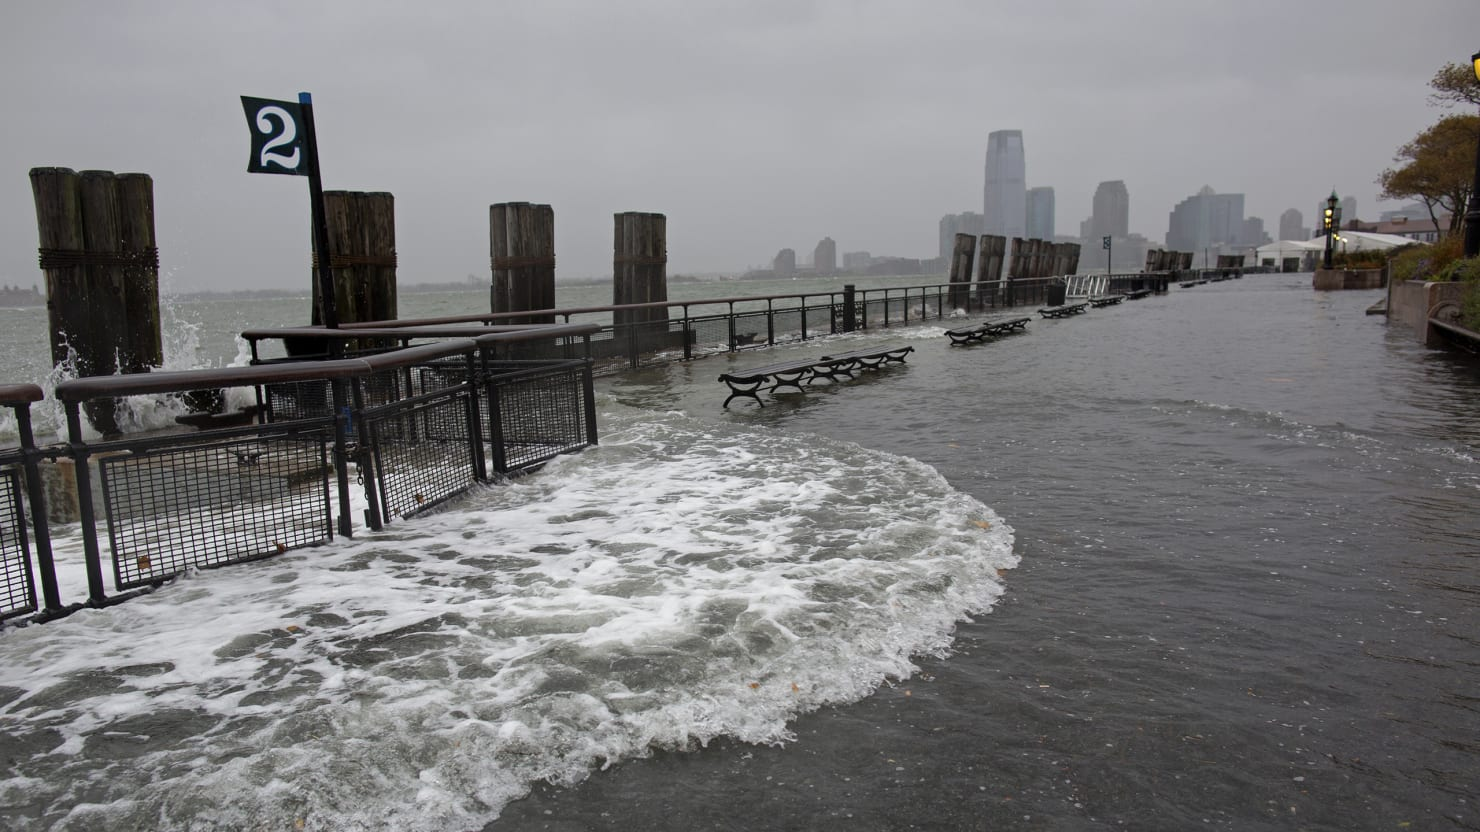 Rockefeller Foundation Announces $100 Million Project to Make Cities More Resilient